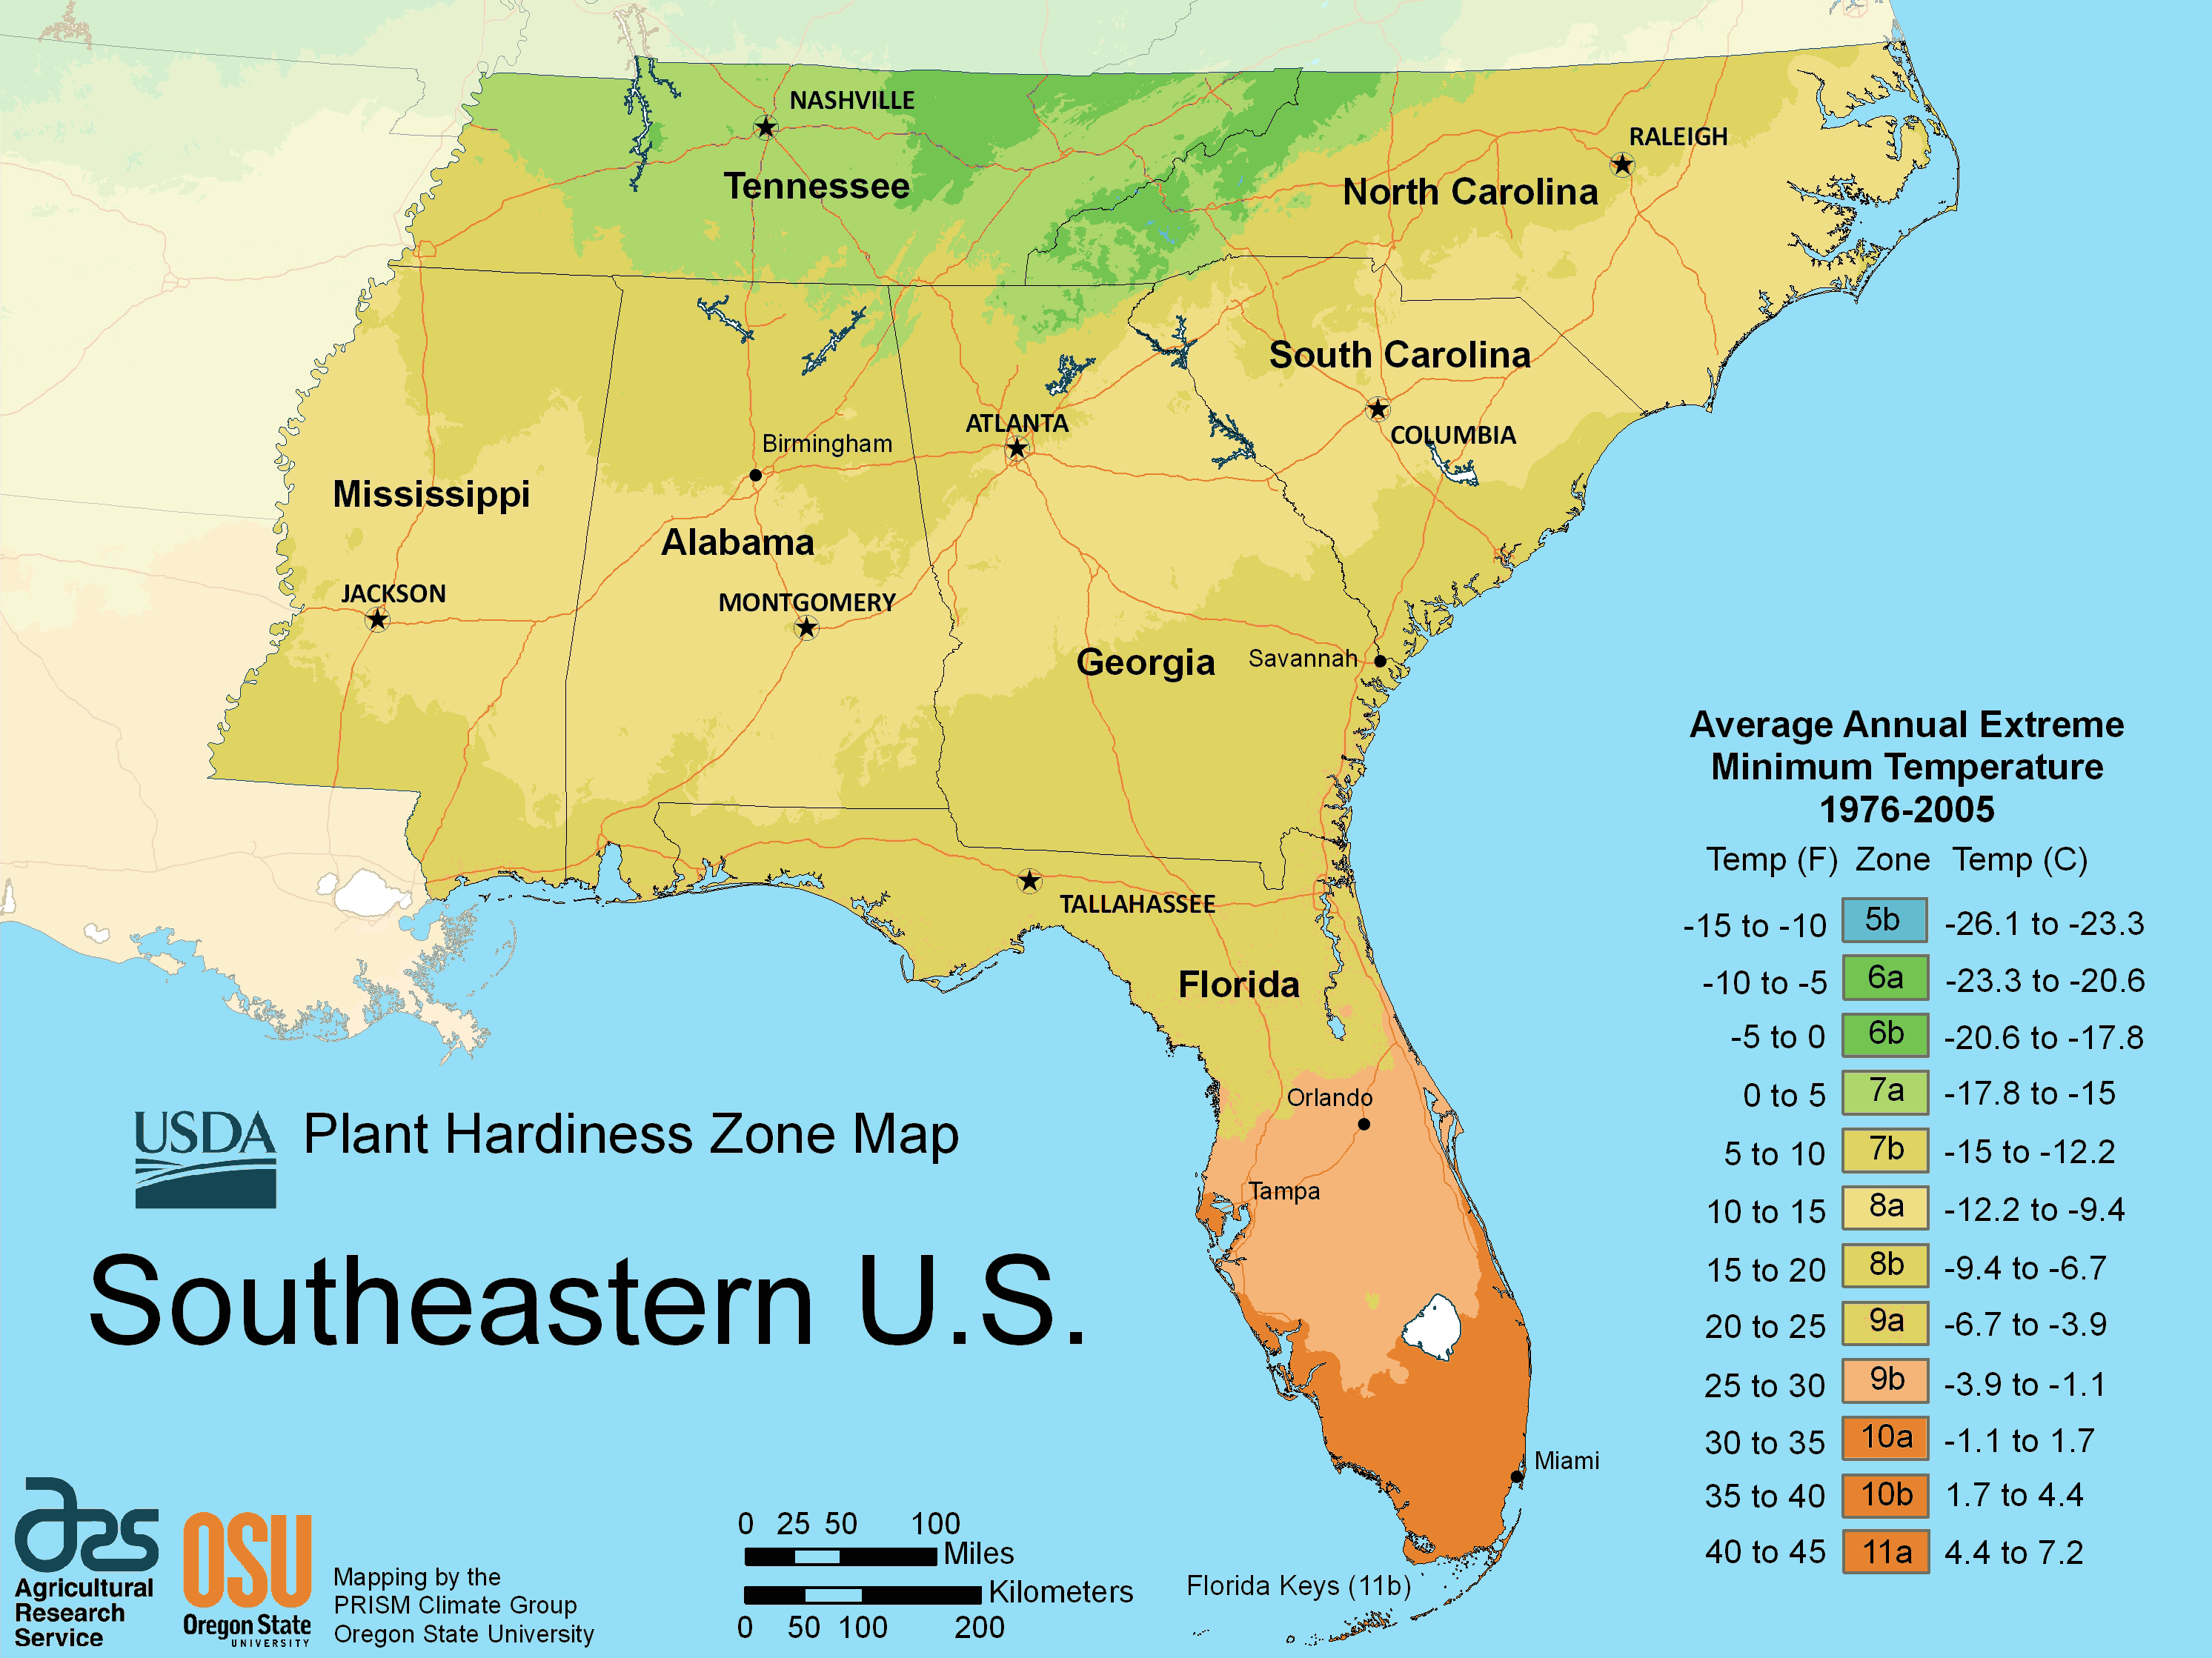 South East Us Plant Hardiness Zone Map • Mapsof.net